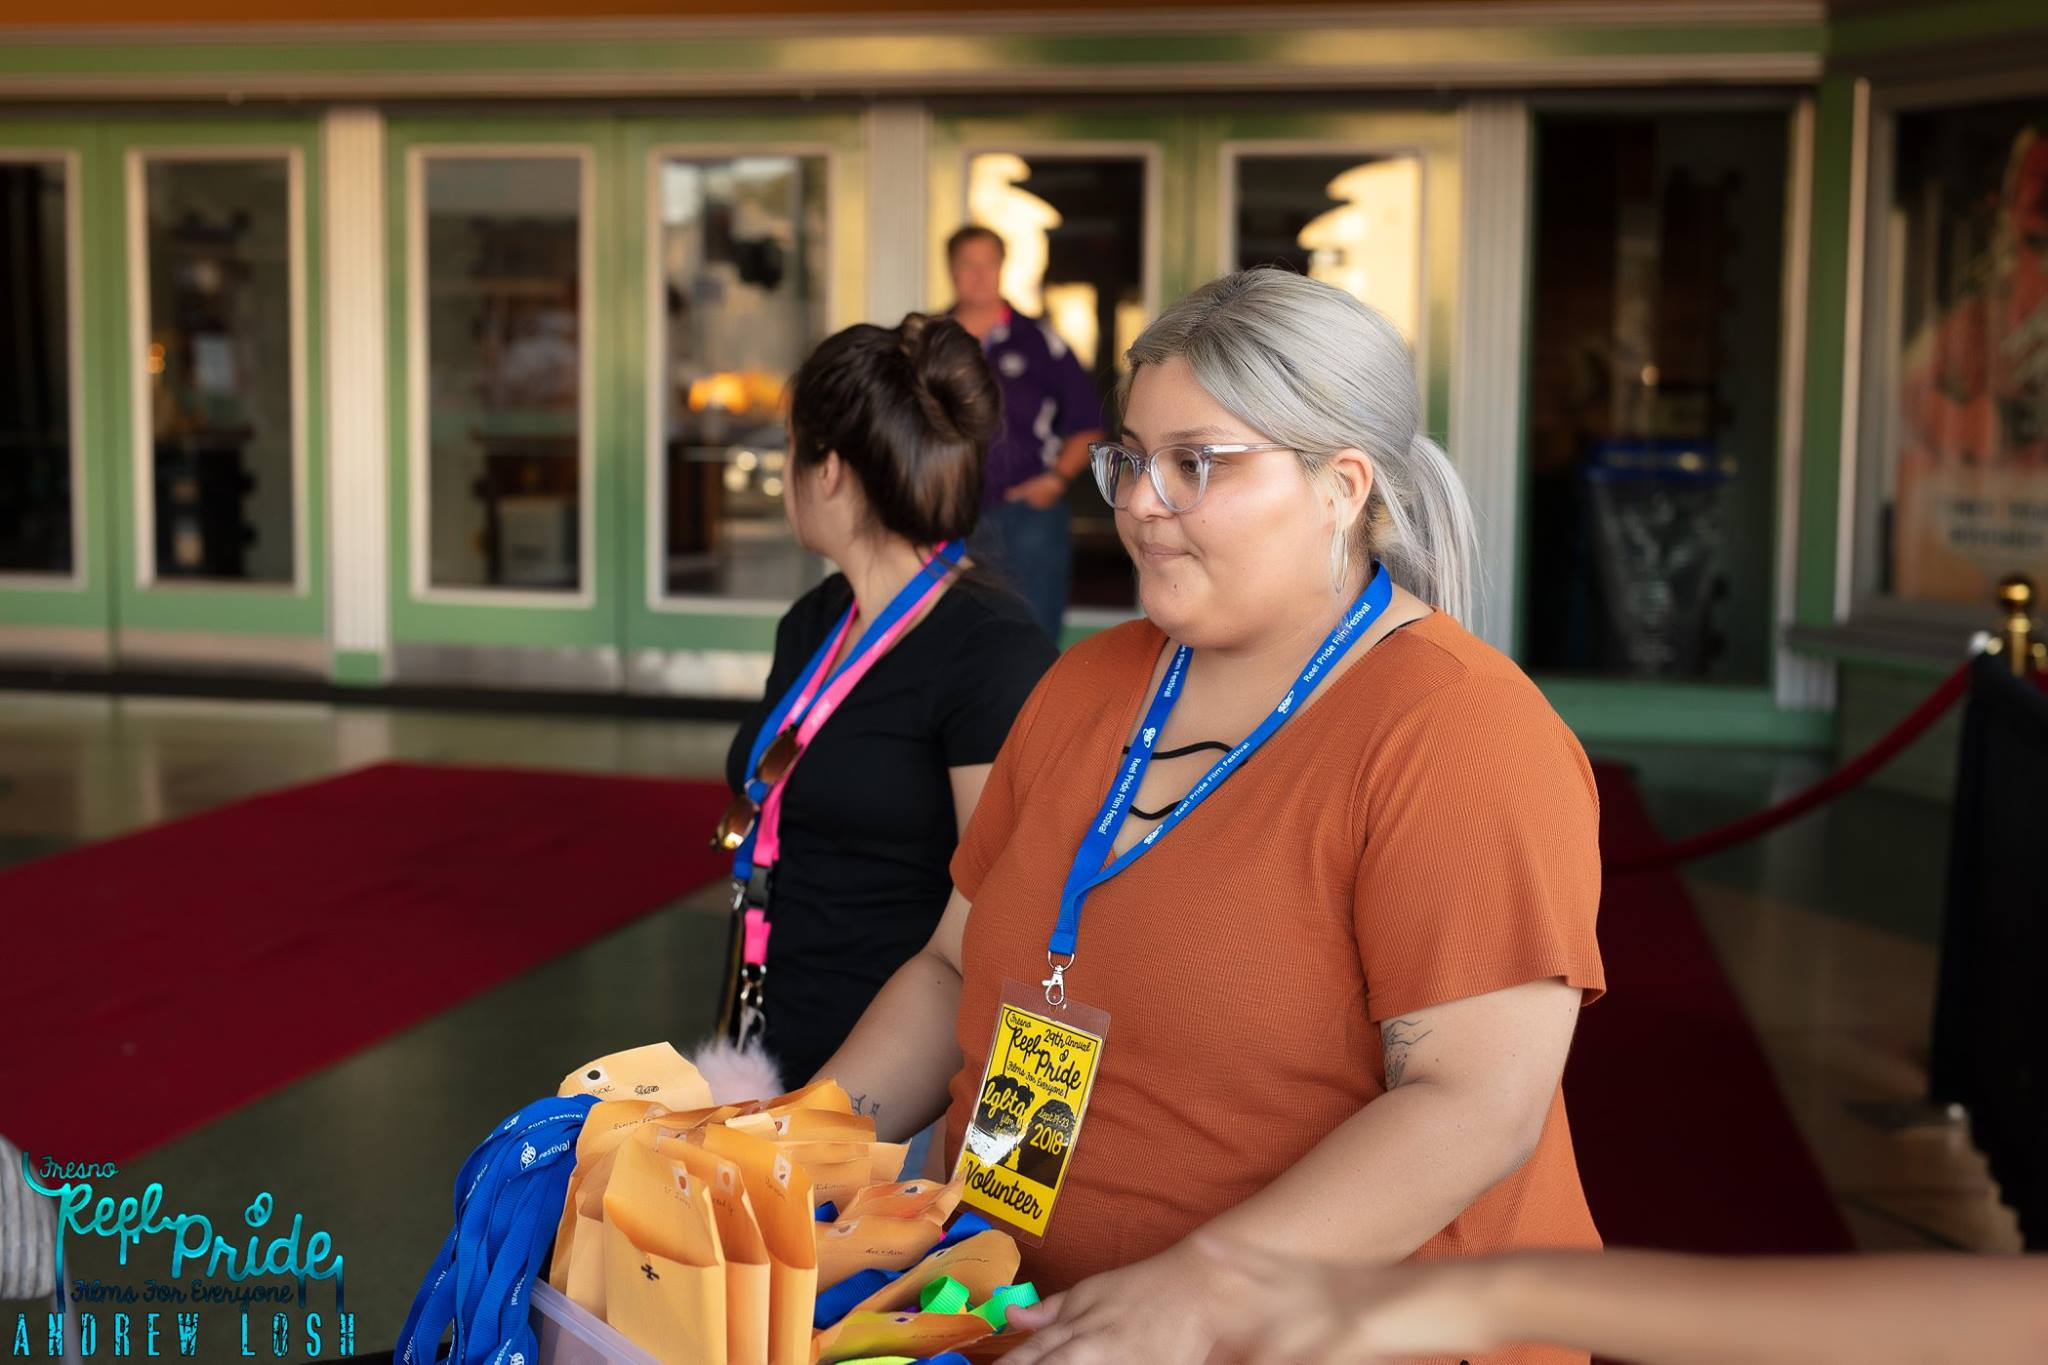 Join Us! - We're gearing up for our 30th Annual Fresno Reel Pride LGBTQ Film Festival and we need your help to make sure it's a success! Join us as a volunteer during our five-day film festival.